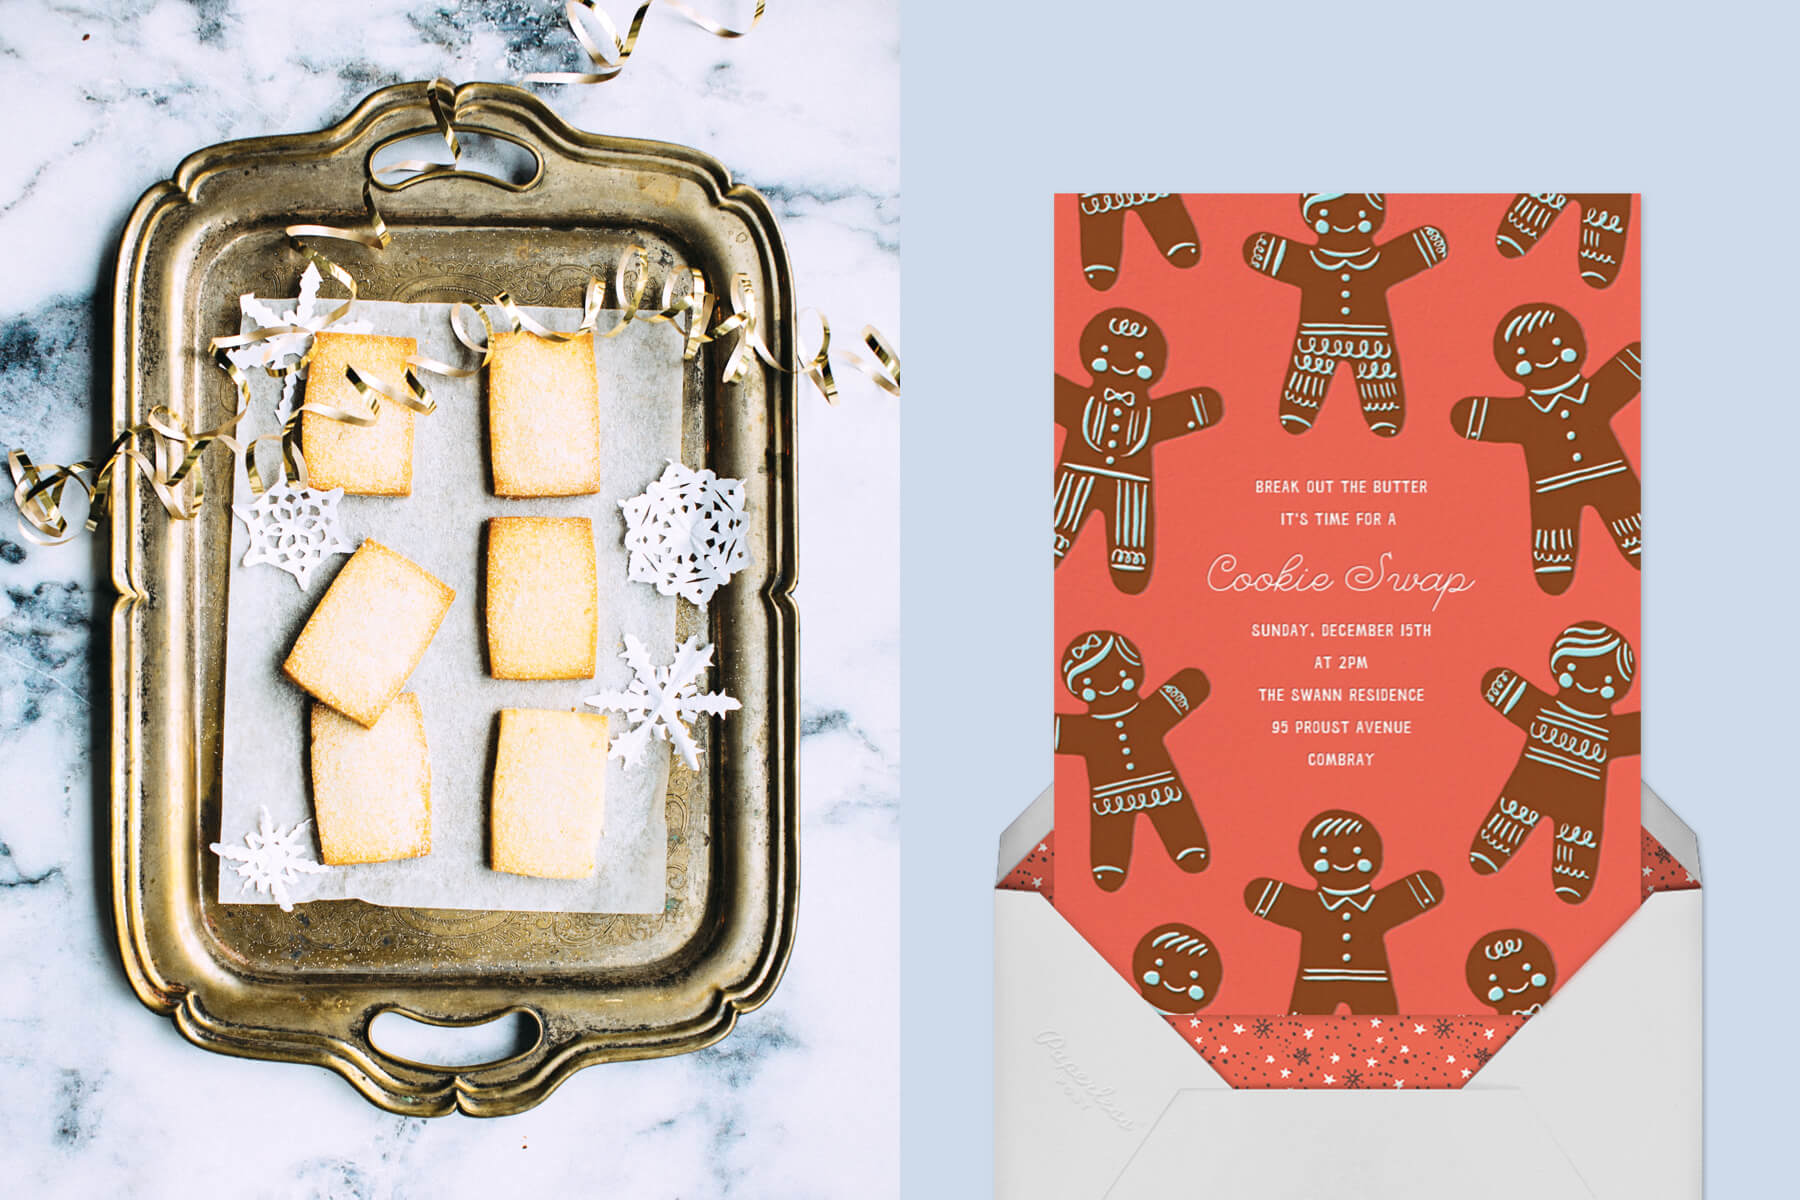 christmas cookie drop-off with an image of shortbread cookies on a tray and a gingerbread man invitation